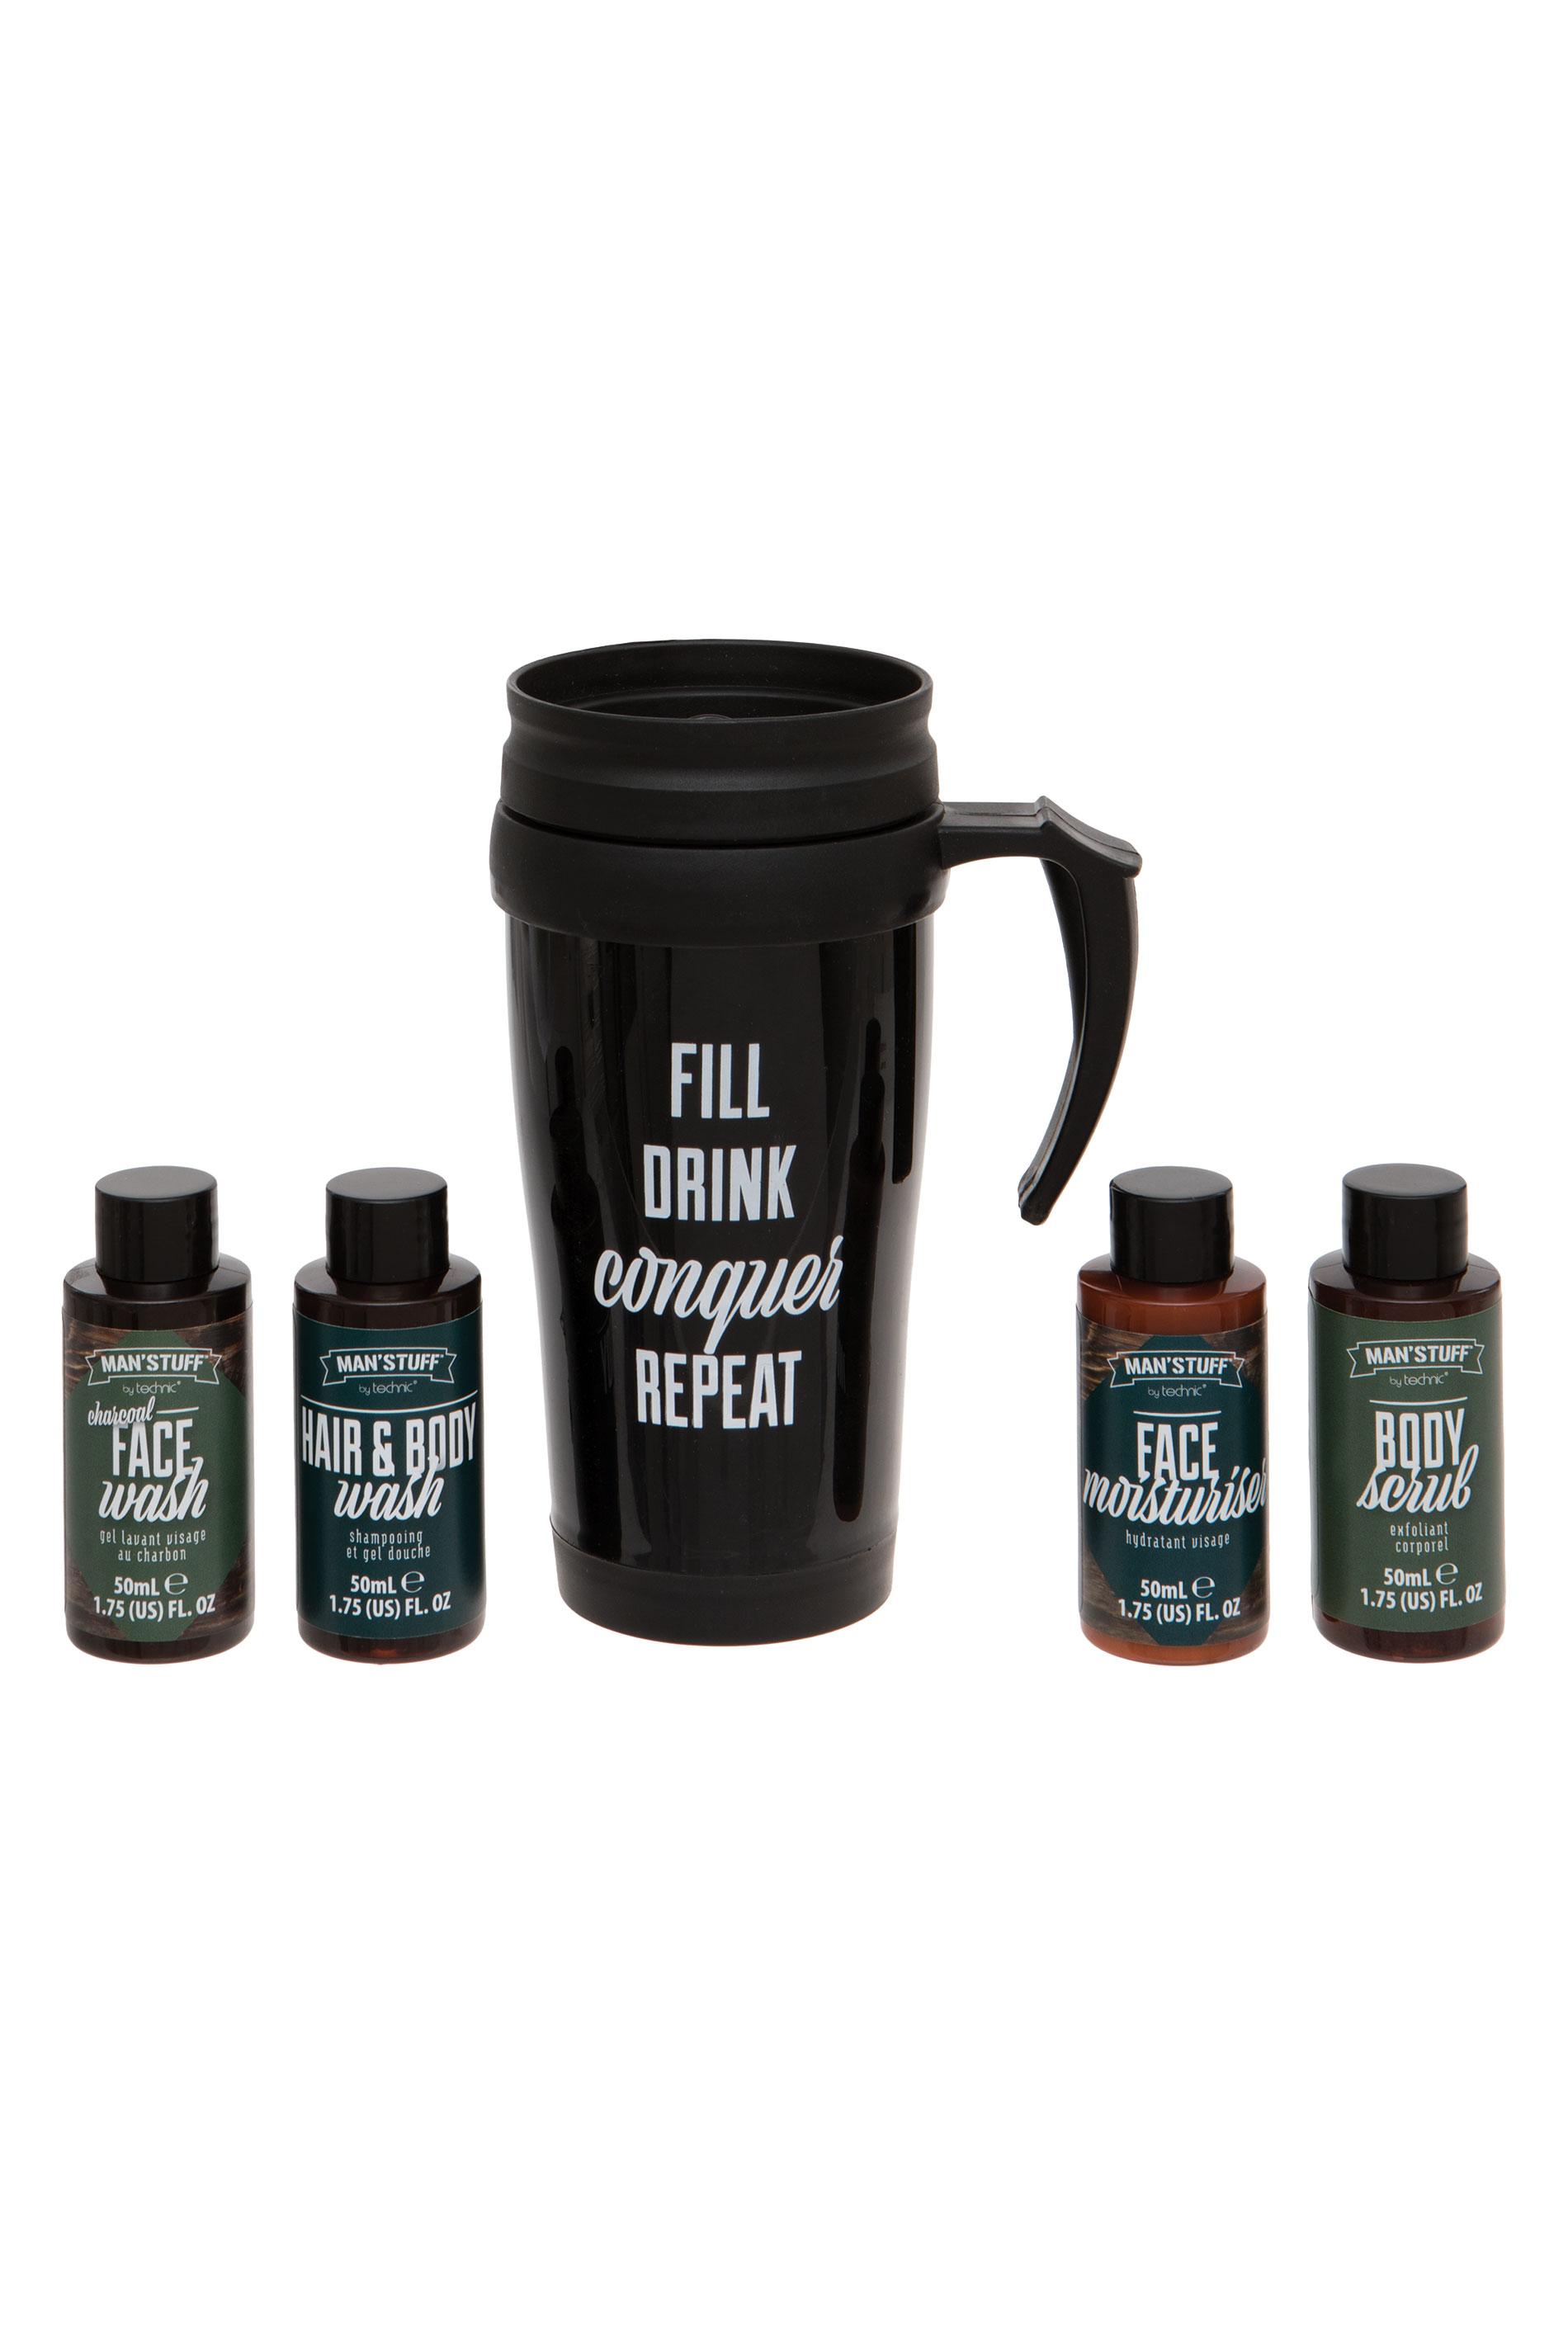 MANS'STUFF 'Going Places' Toiletry Gift Set